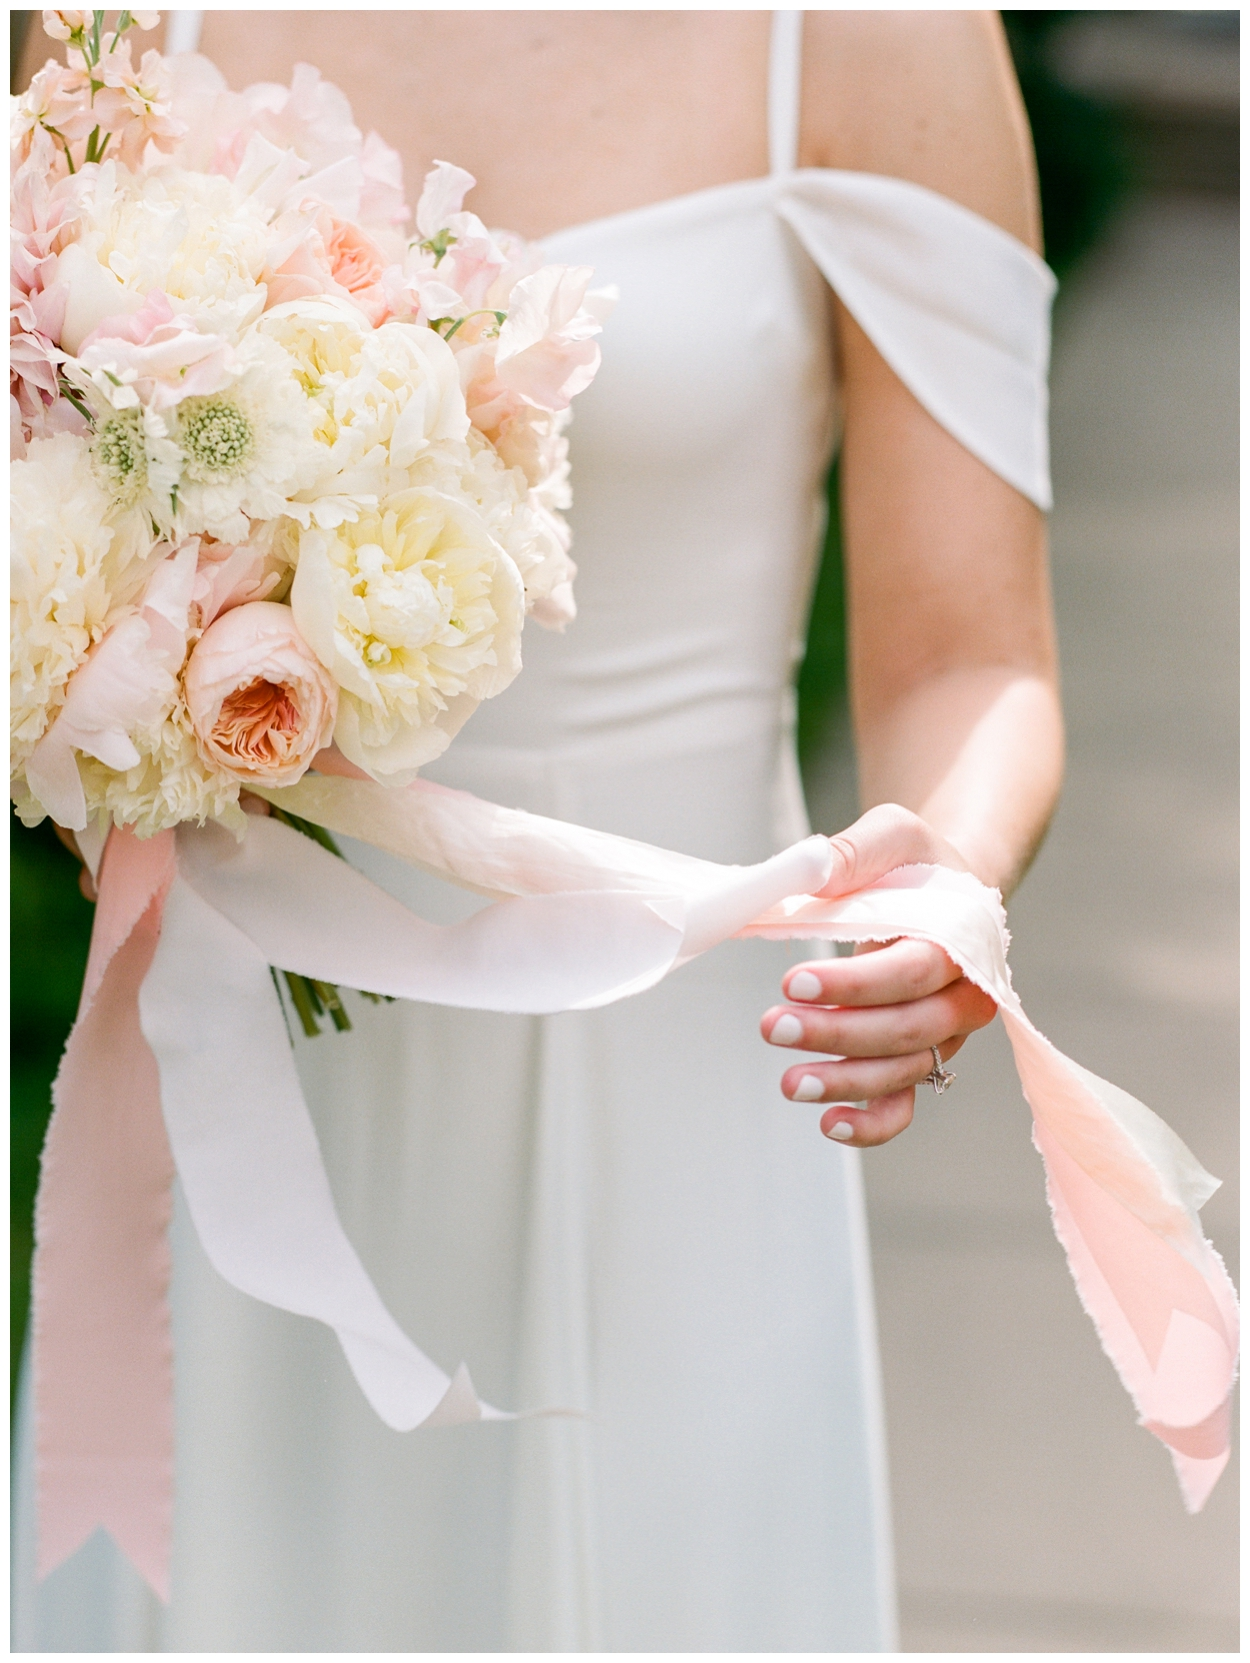 spring blush and white brunch wedding at the Ritz Carlton Georgetown in Washington DC by fine art wedding photographer Lissa Ryan Photography